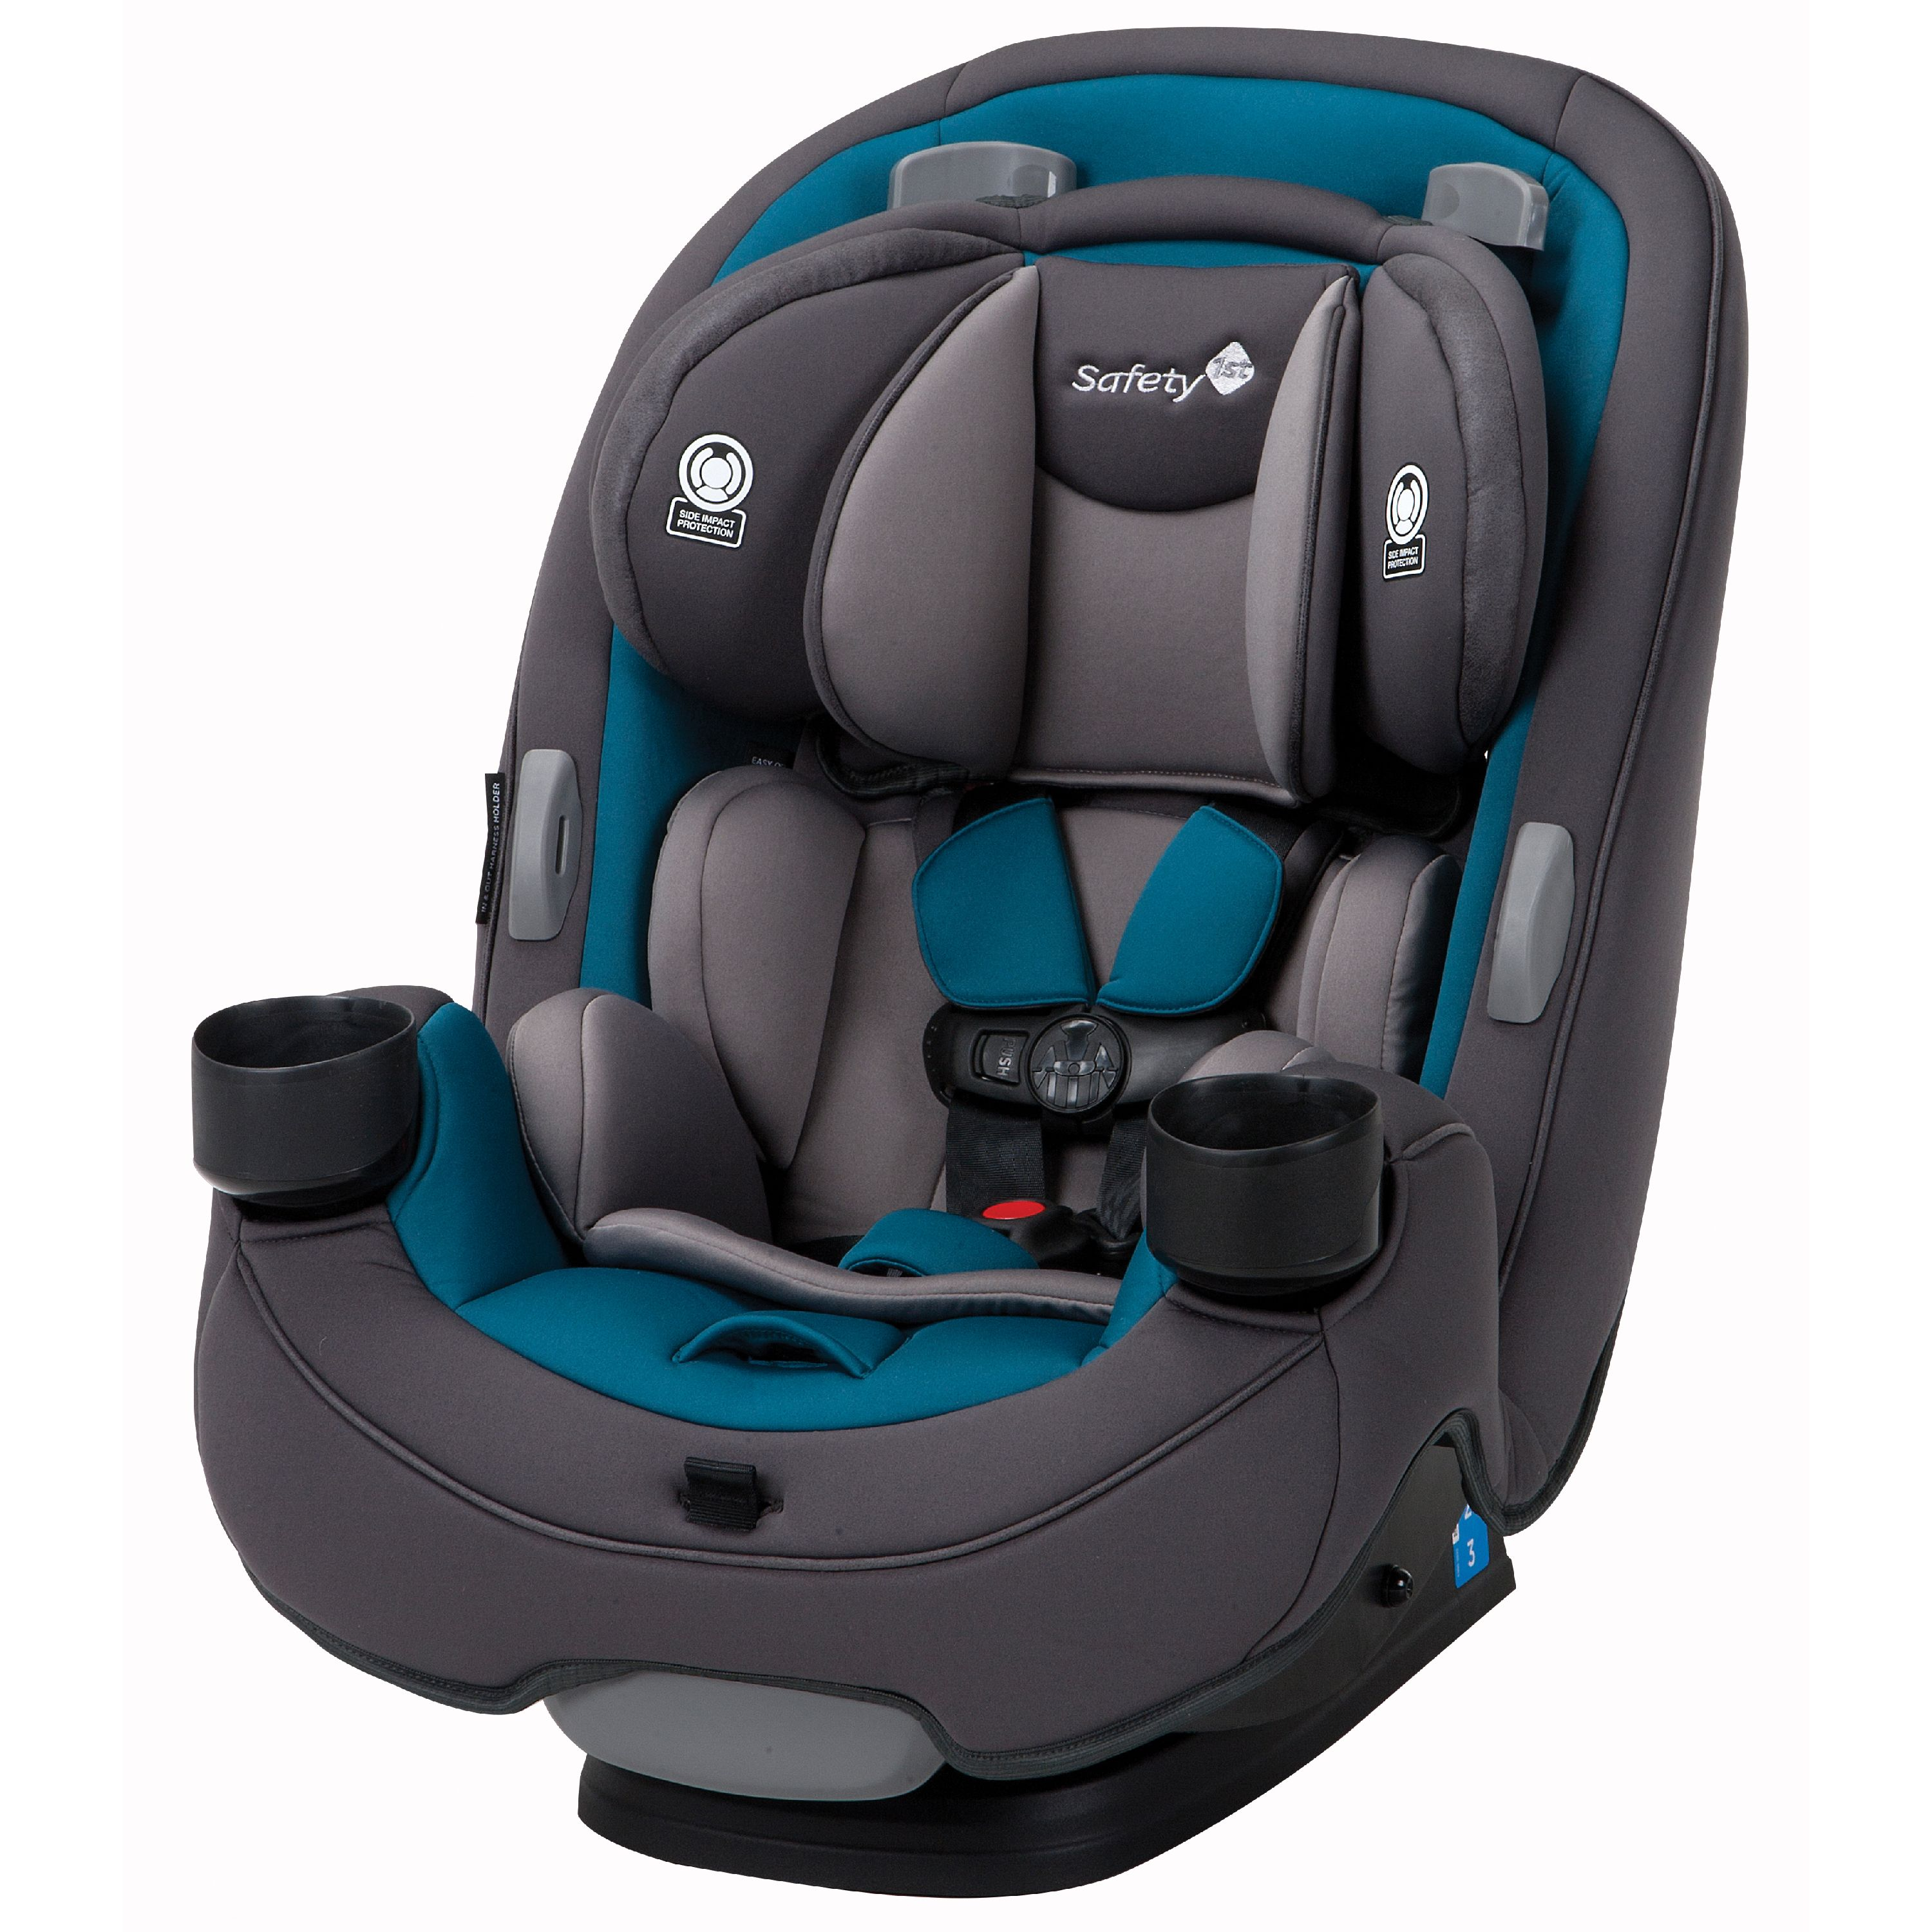 Safety 1st Grow & Go 3-In-1 Convertible Car Seat, Choose your Fashion